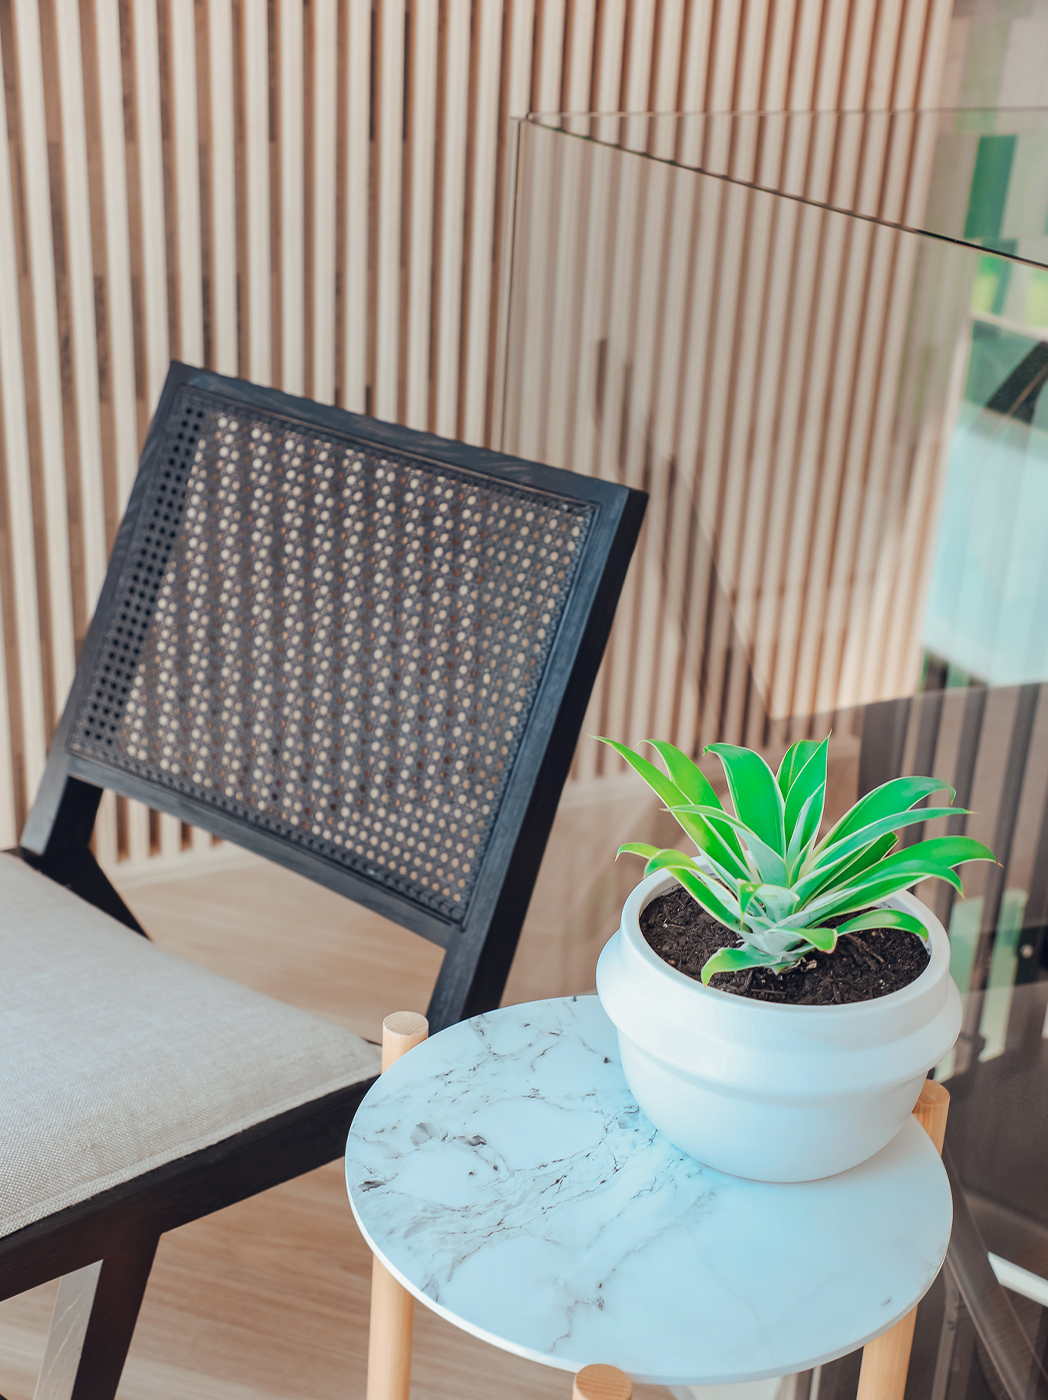 A chair next to a table with a pot plant.